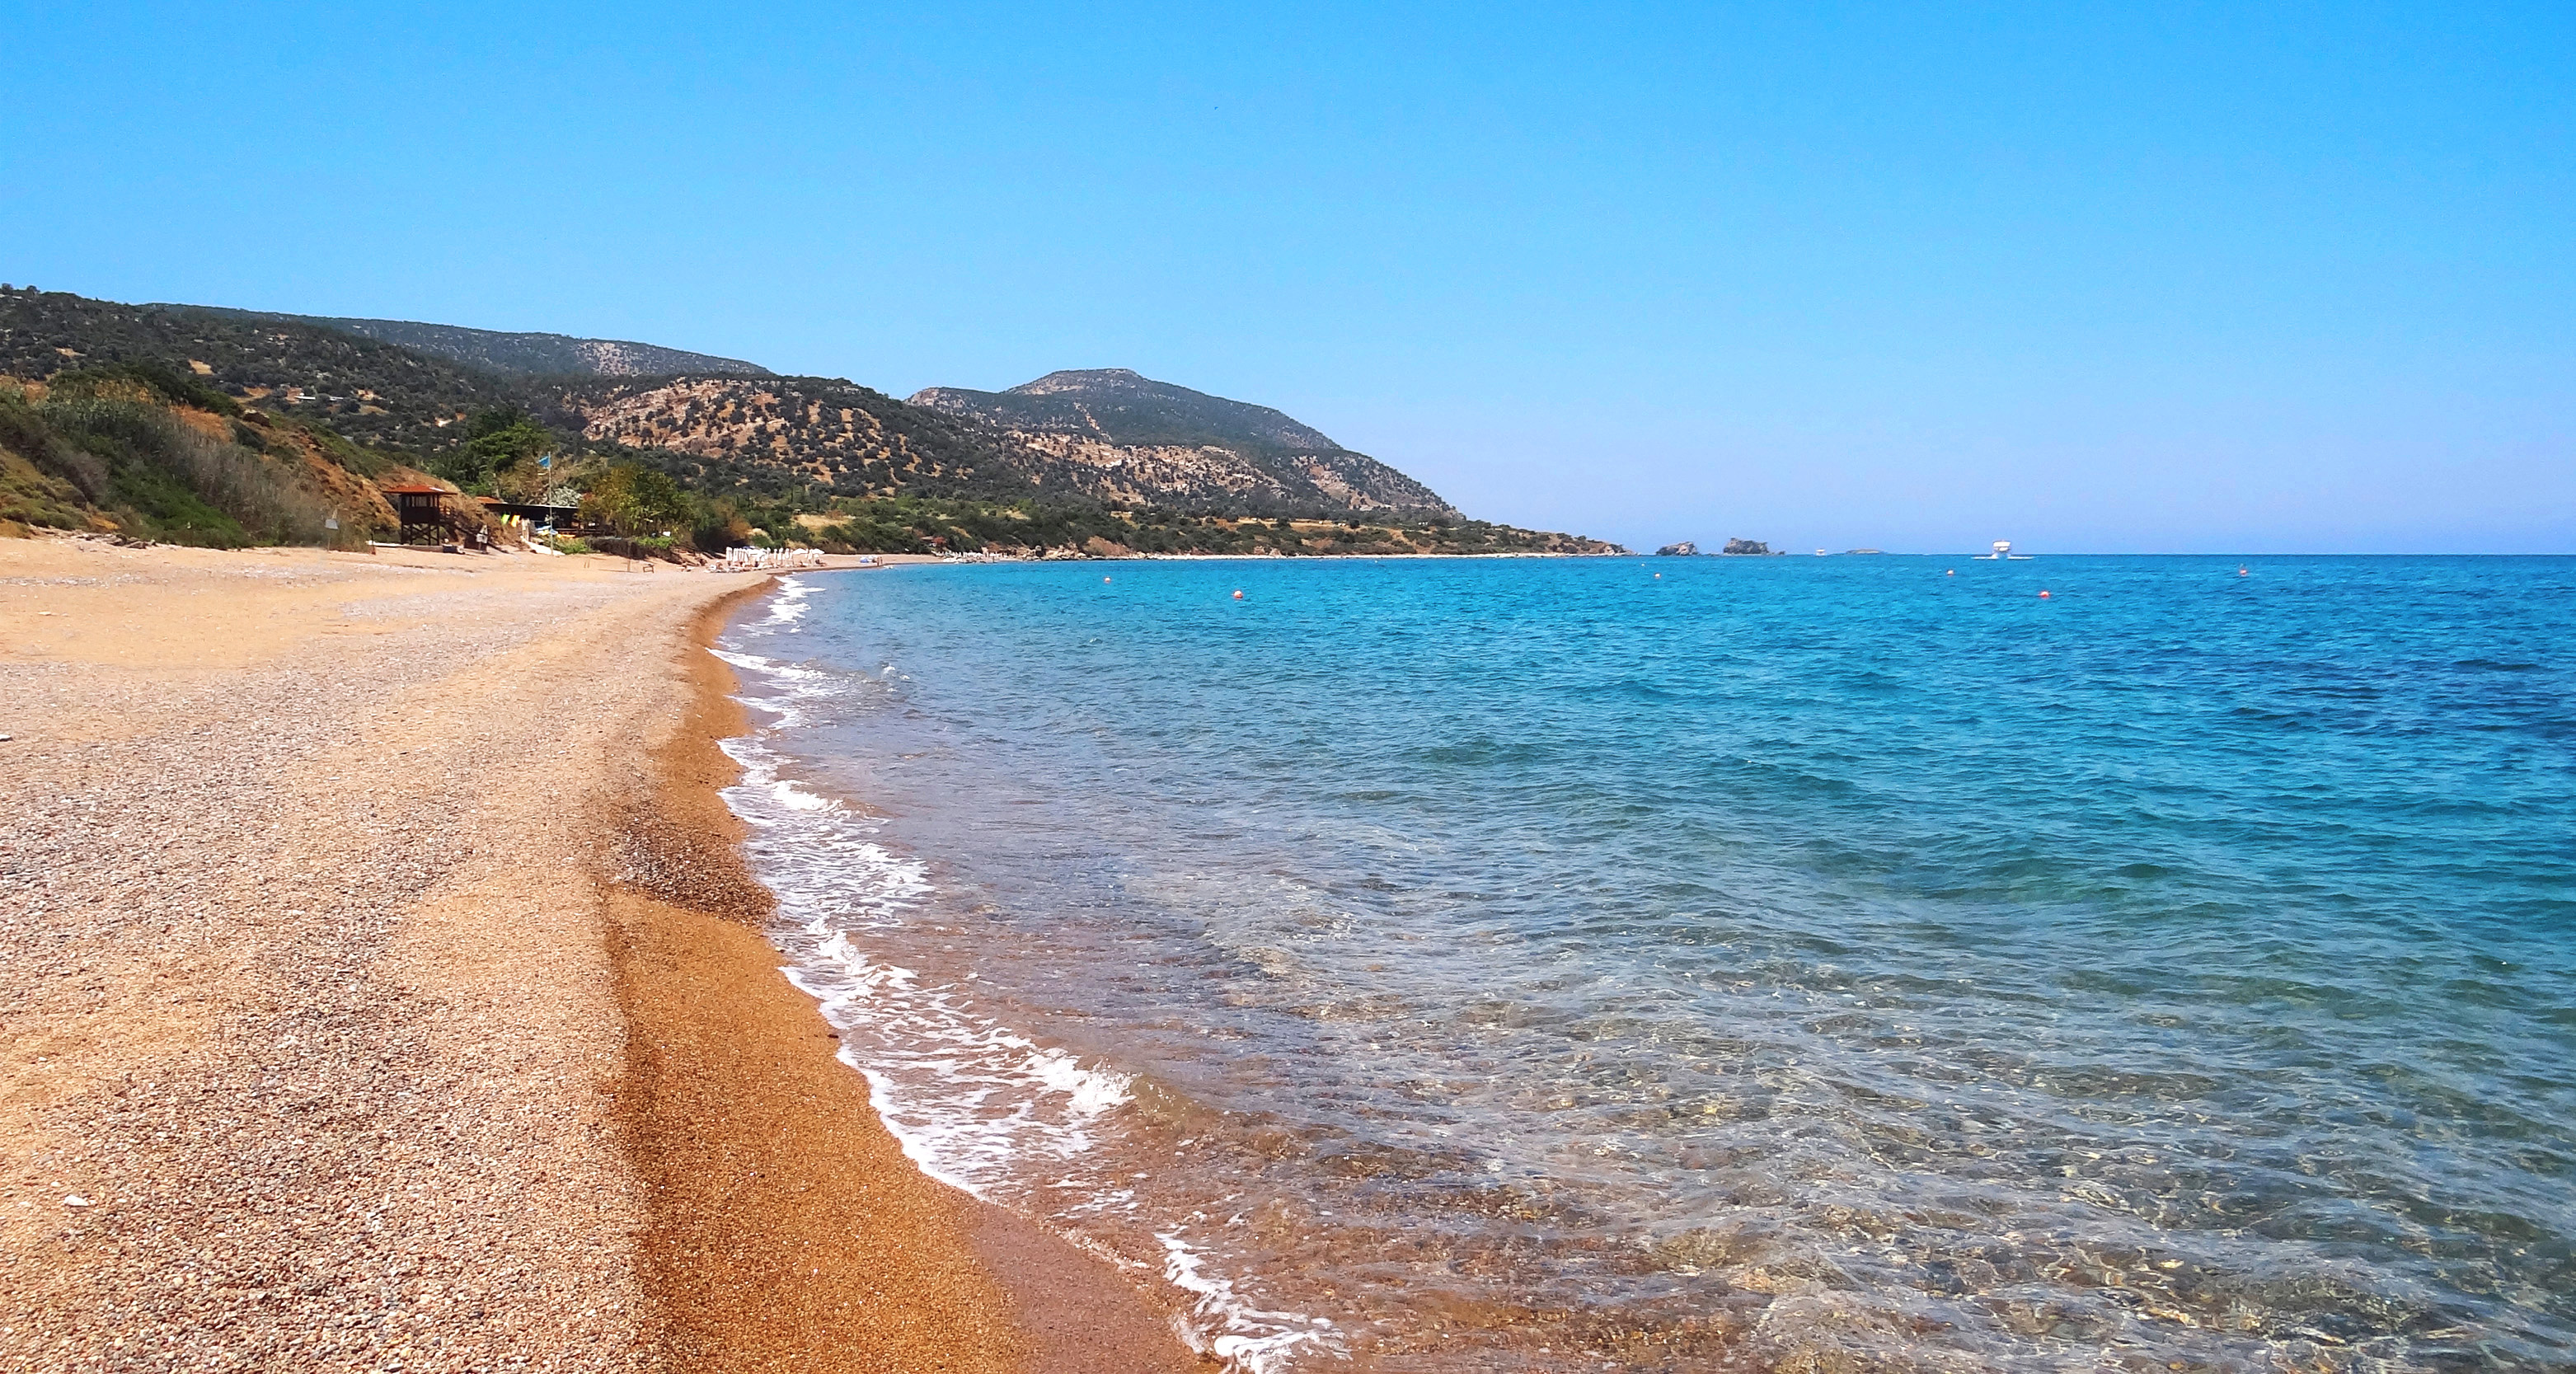 ASPROKREMMOS (Yiannakis) BEACH -  POLIS  (PAPHOS DISTRICT)